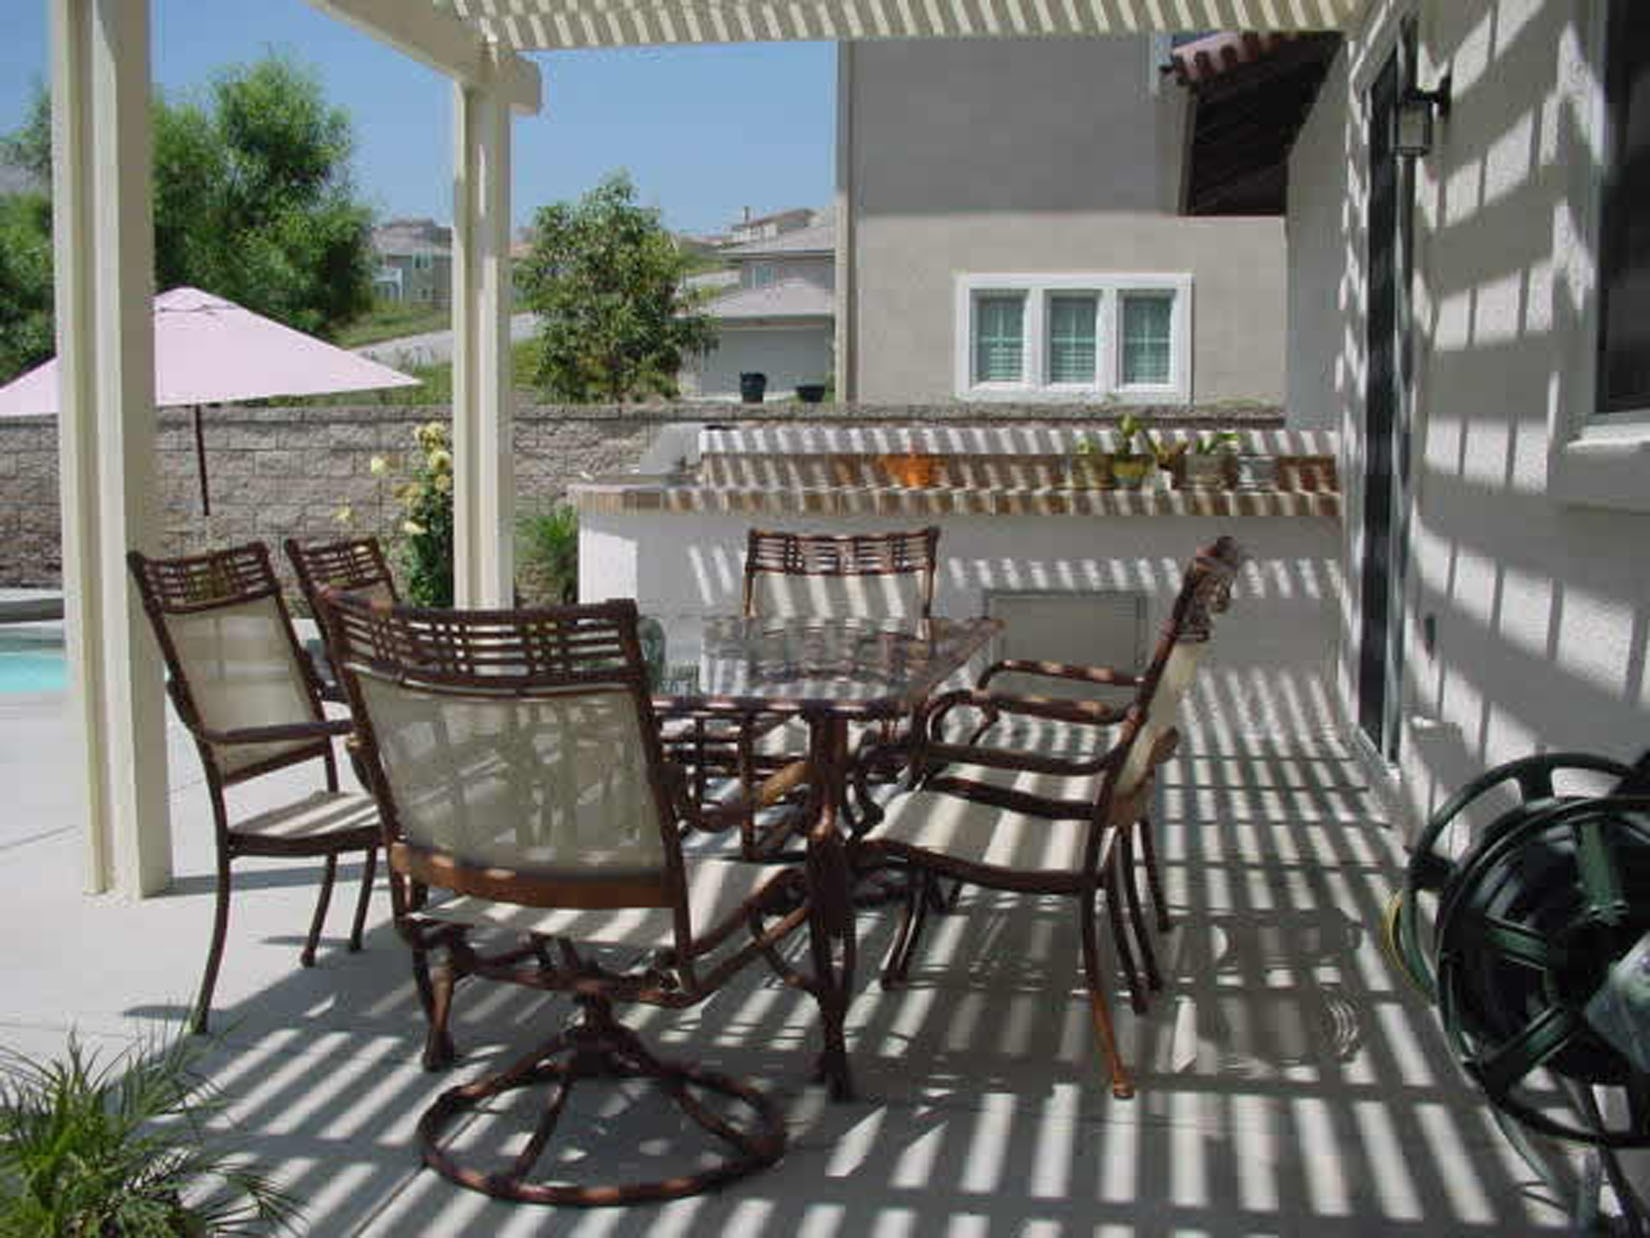 Patio covers how to build your own pool how to build for How to build a patio cover